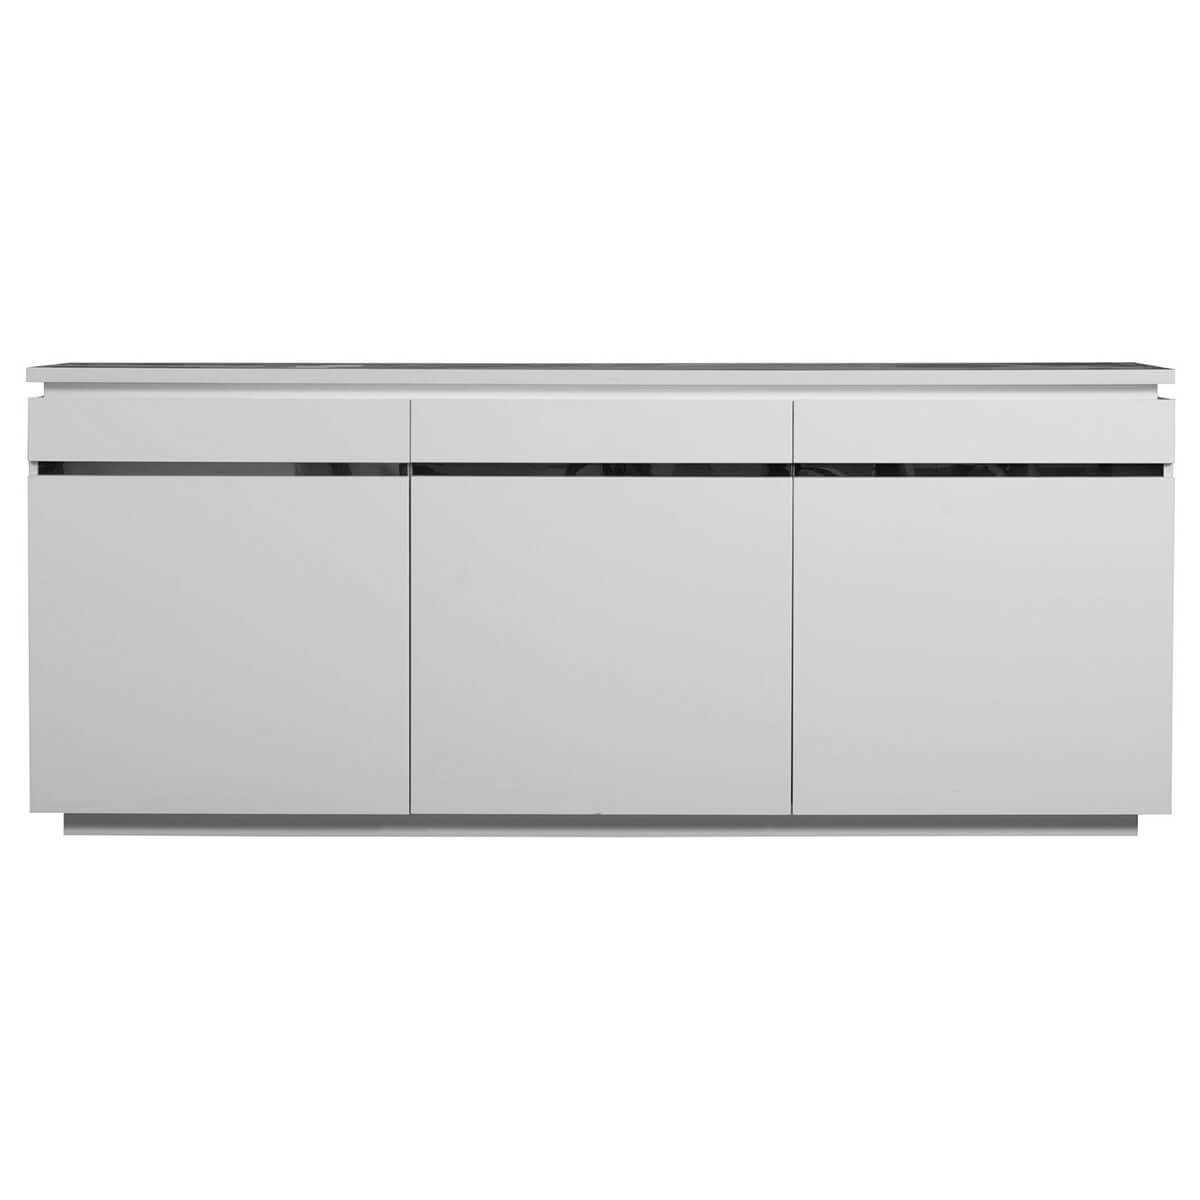 Logan Sideboard White High Gloss 3 Door With Lights | Sideboards | Fads intended for Logan Sideboards (Image 13 of 30)